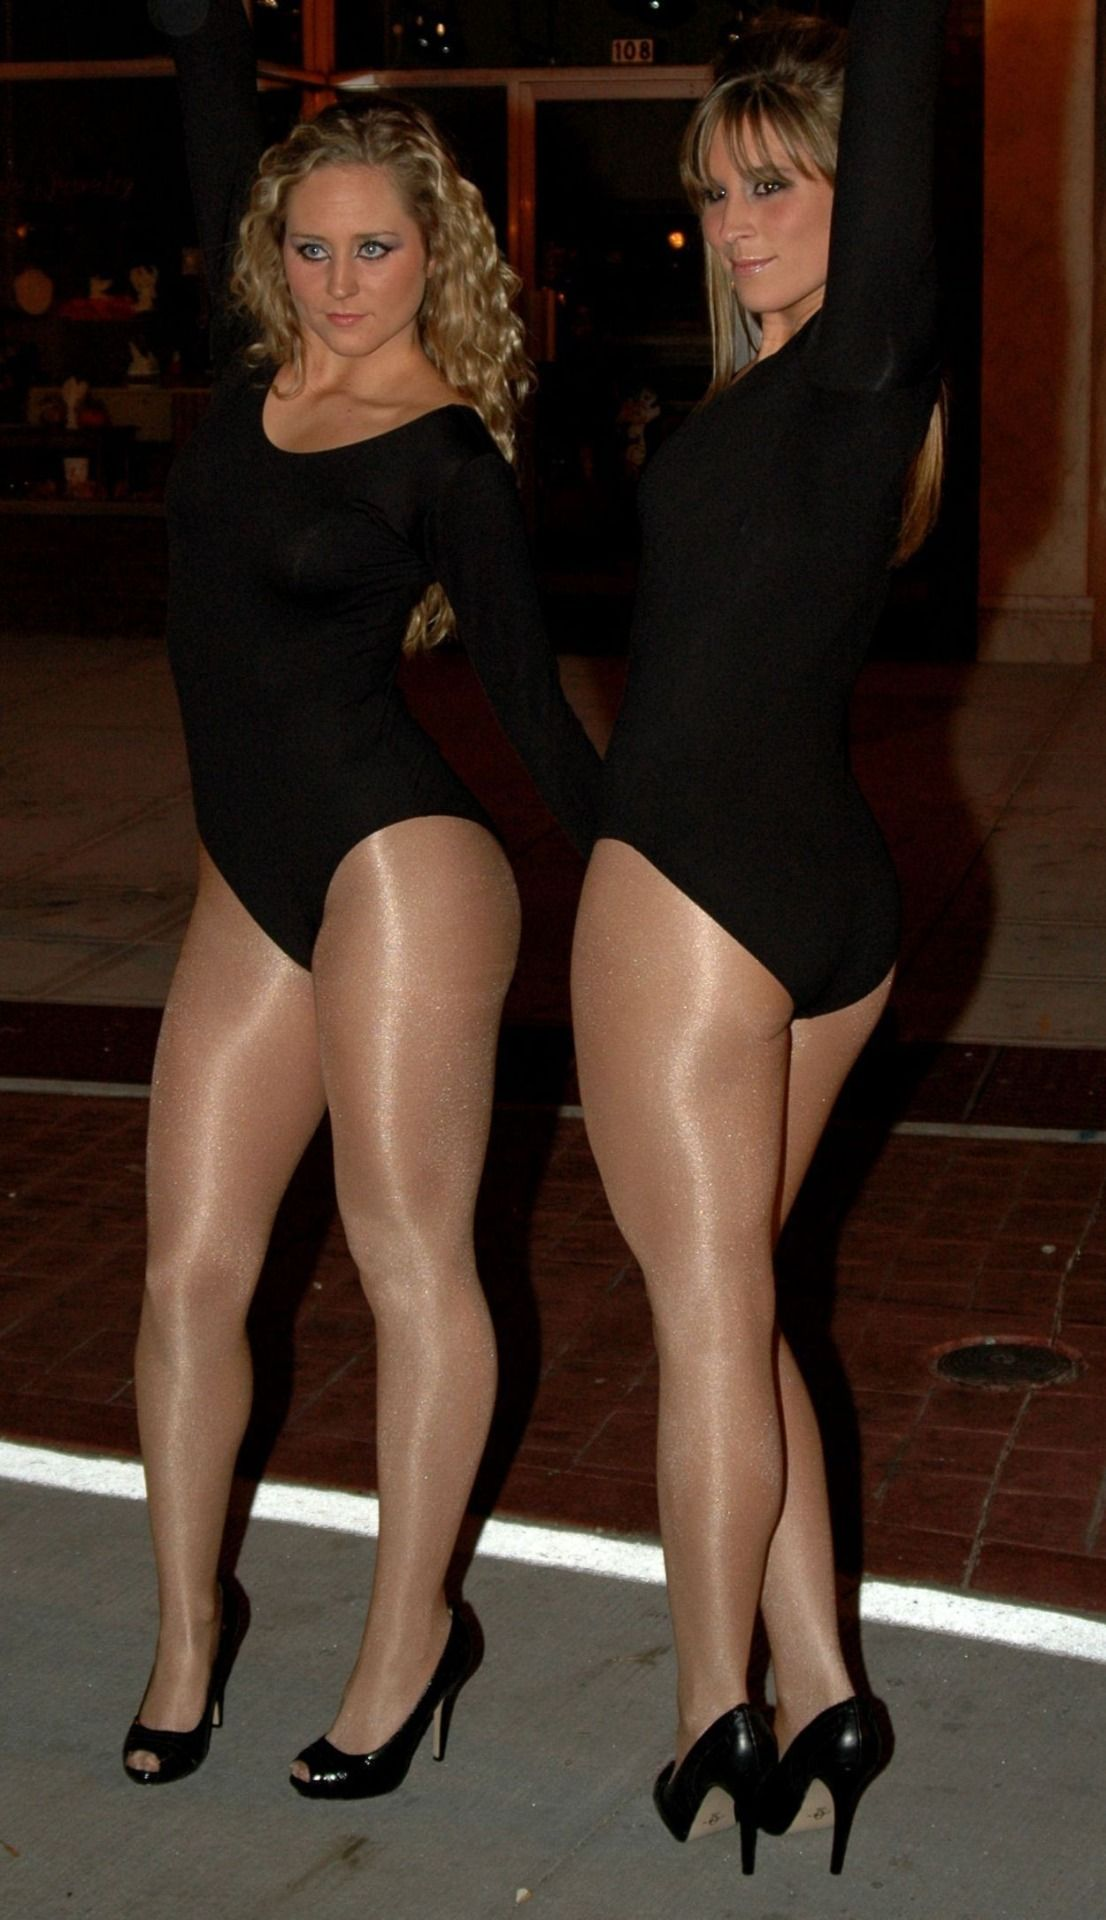 second-hand-smoke-in-pantyhose-don-jlo-nude-butt-gif